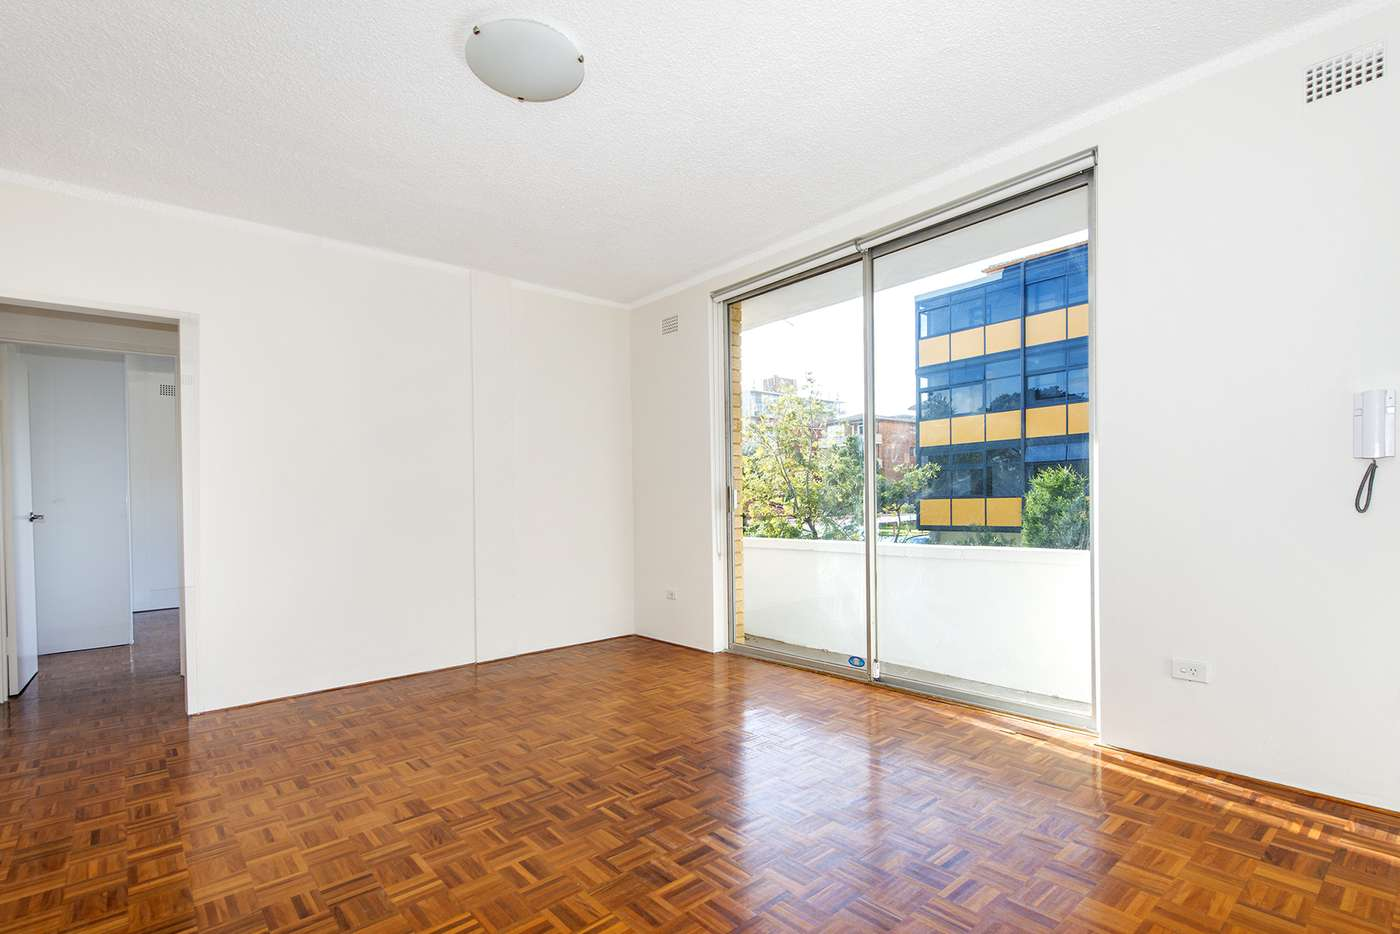 Main view of Homely apartment listing, 6/6 Marne St, Vaucluse NSW 2030